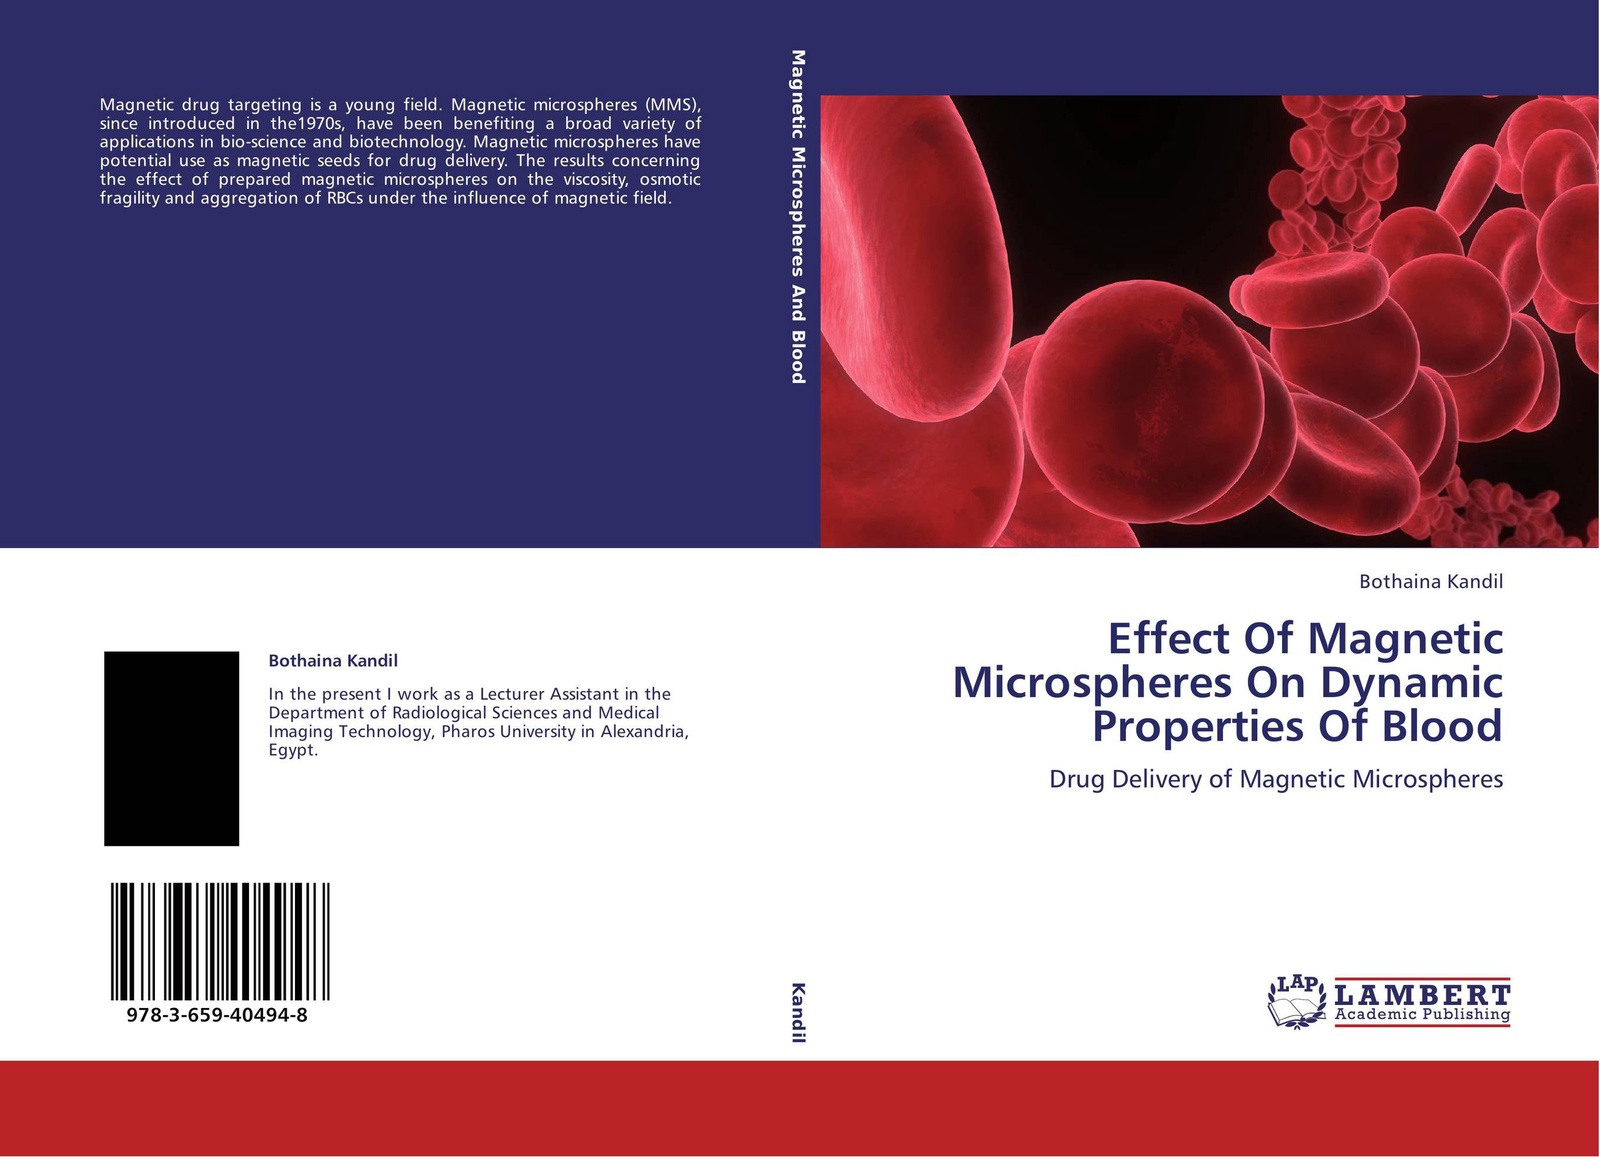 Bothaina Kandil Effect Of Magnetic Microspheres On Dynamic Properties Of Blood generation of magnetic field in laser plasma interactions